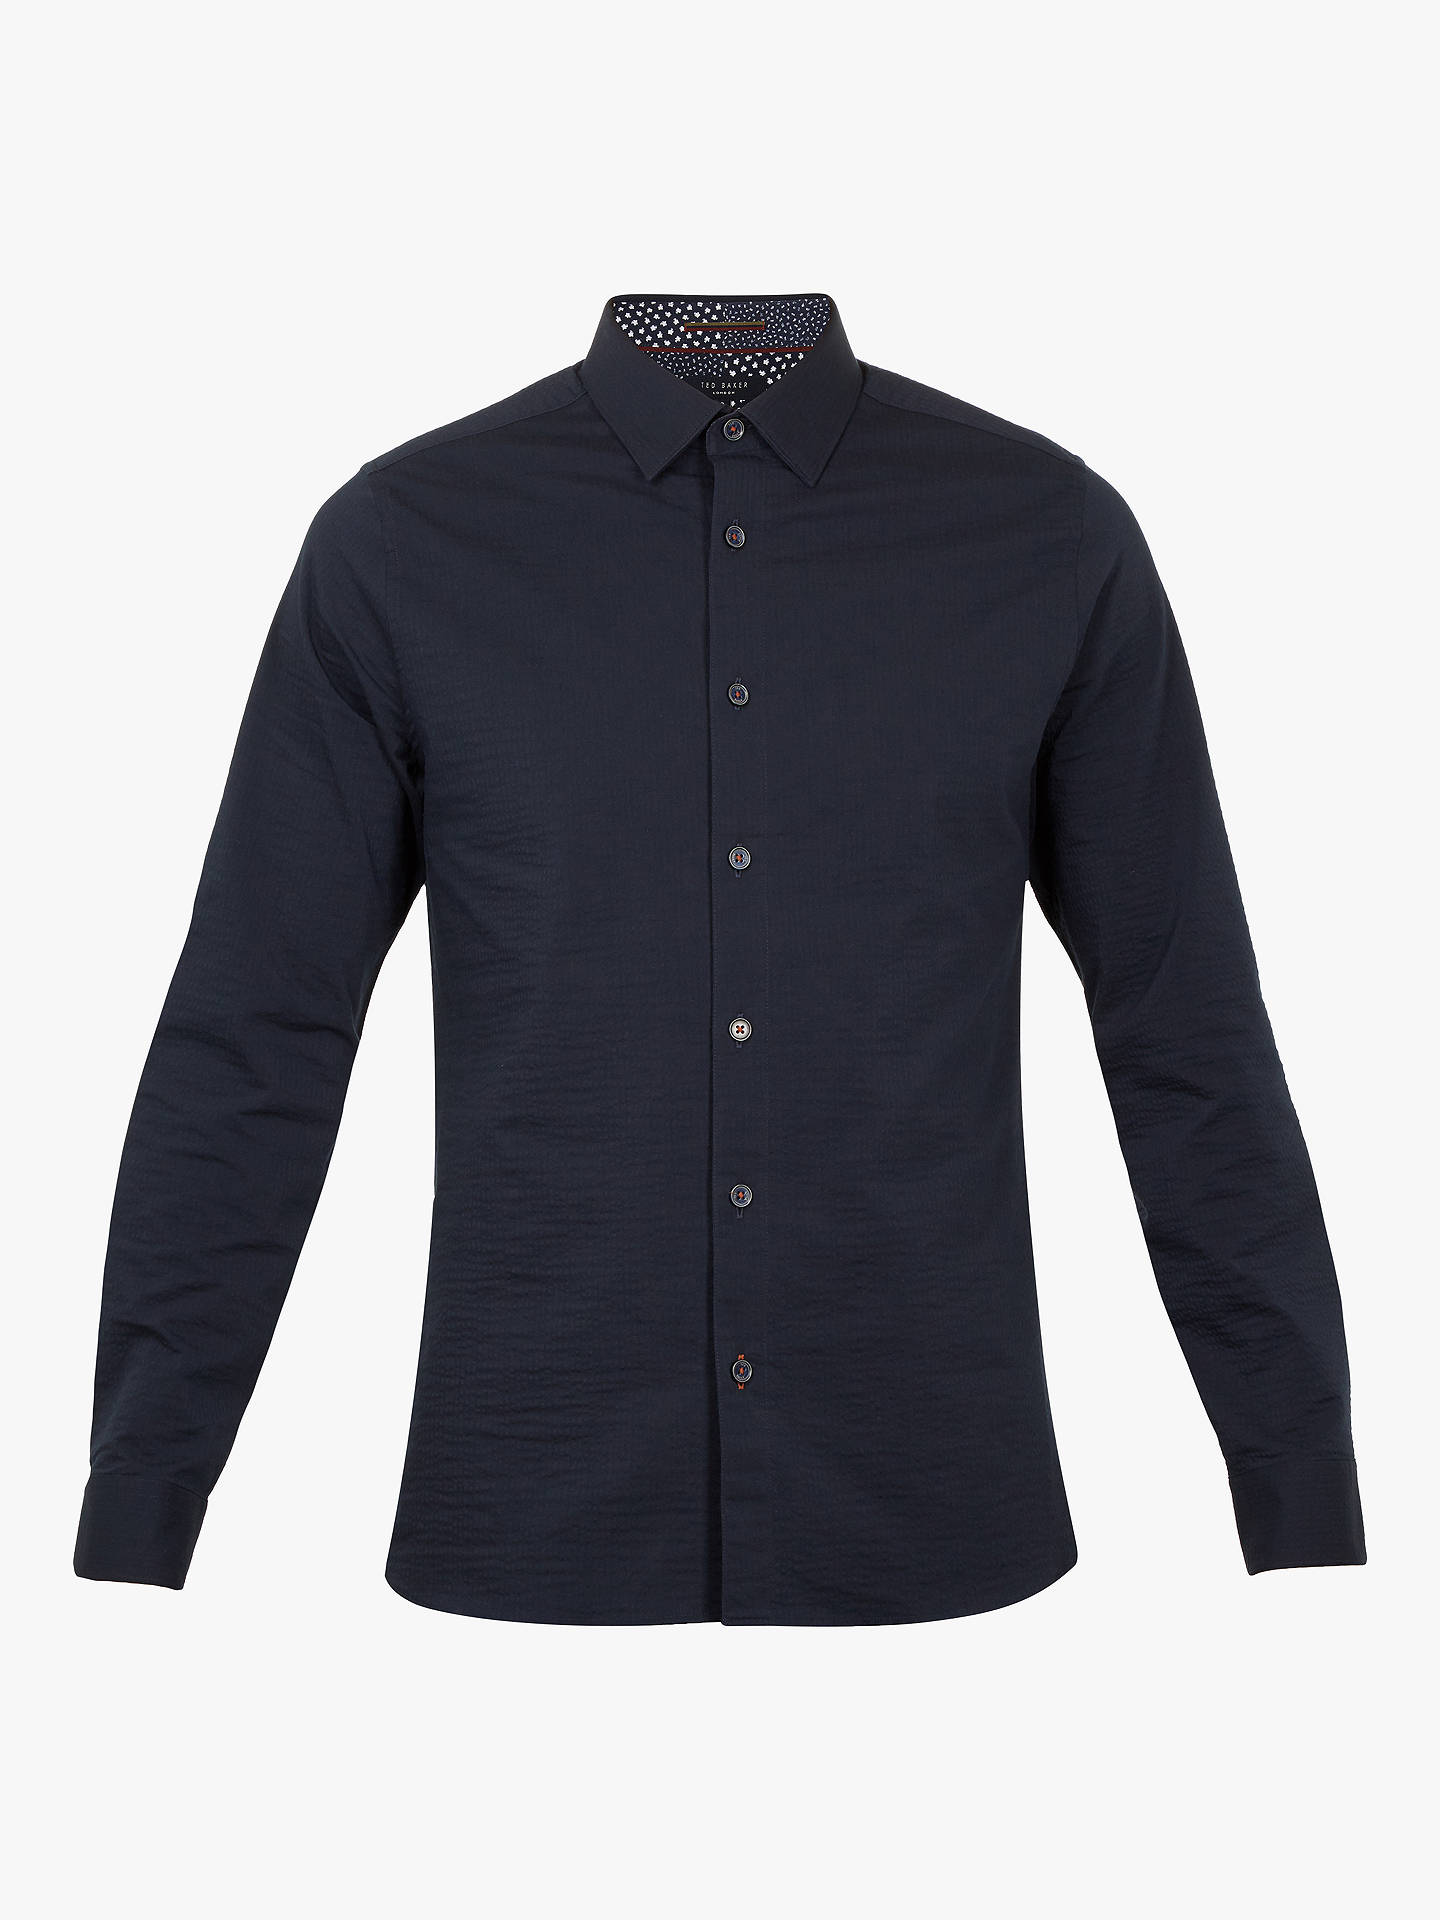 BuyTed Baker Padding Long Sleeve Shirt, Navy, 15.5 Online at johnlewis.com